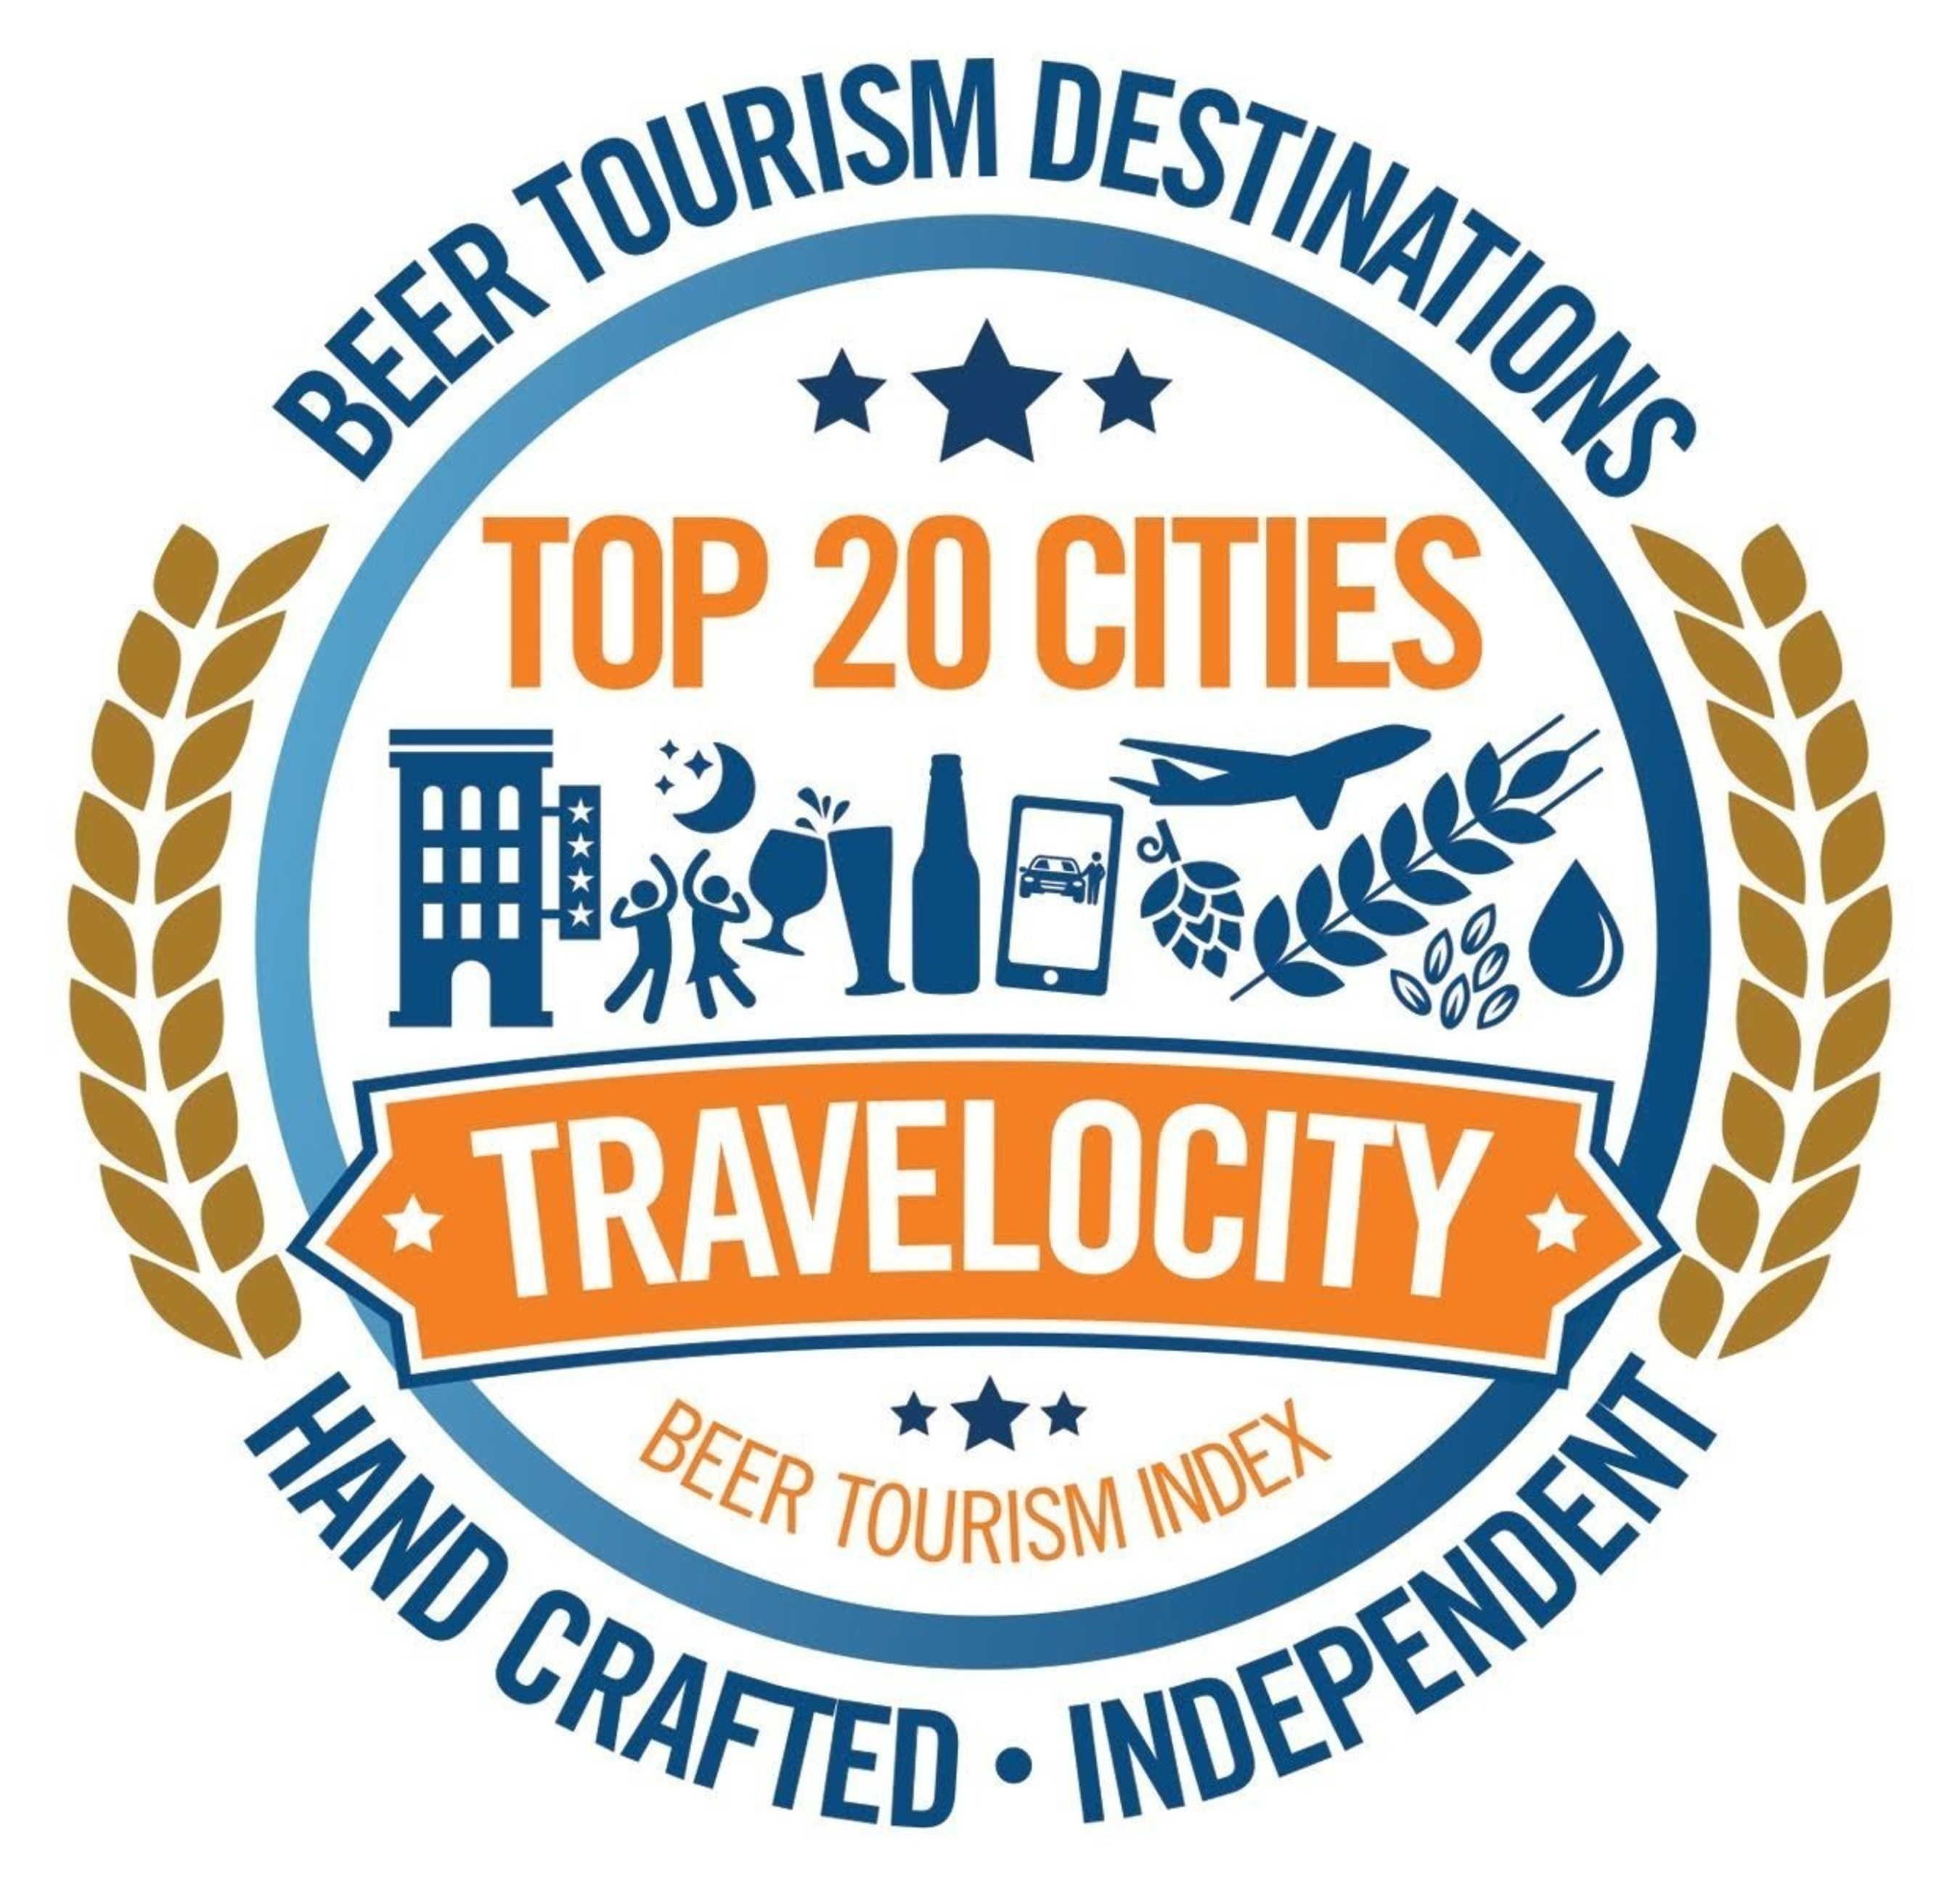 Recognizing this interest in beer tourism, Travelocity enlisted the expertise of the Brewers Association, a national trade association dedicated to promoting American craft brewers, their beers and the community of brewing enthusiasts, to find America's best beer destinations by creating the first Beer Tourism Index.